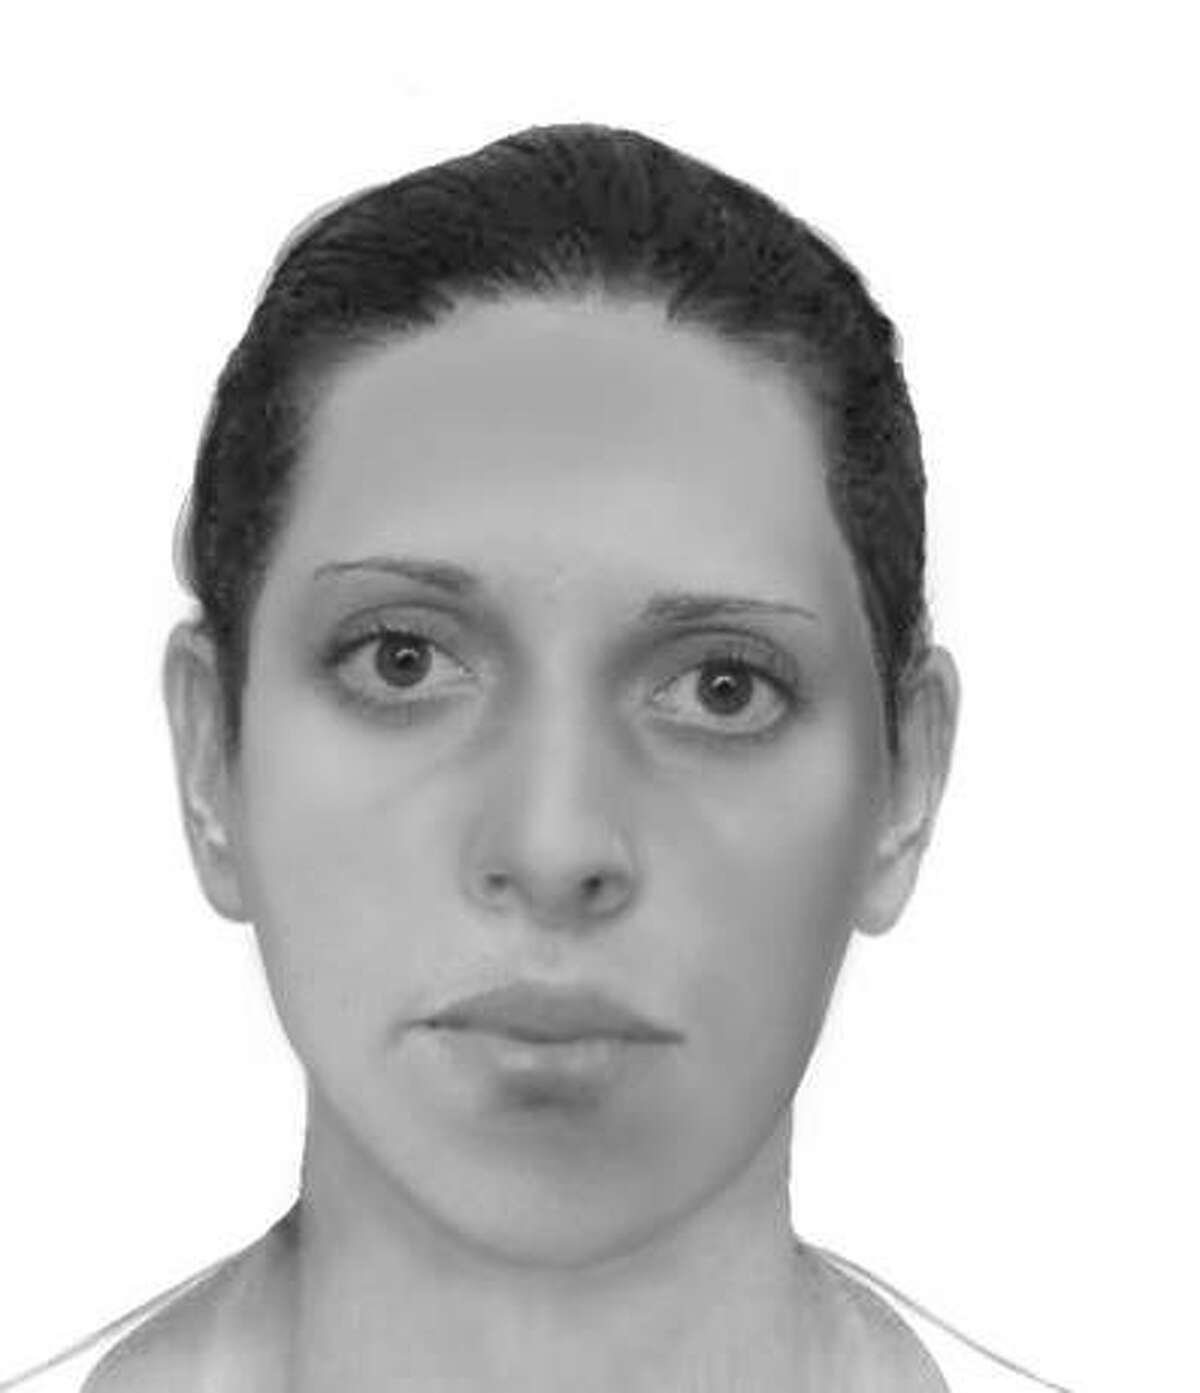 The Texas Department of Public Safety is seeking information to the identity of of a homicide victim from 1992 in an effort to find her killer.